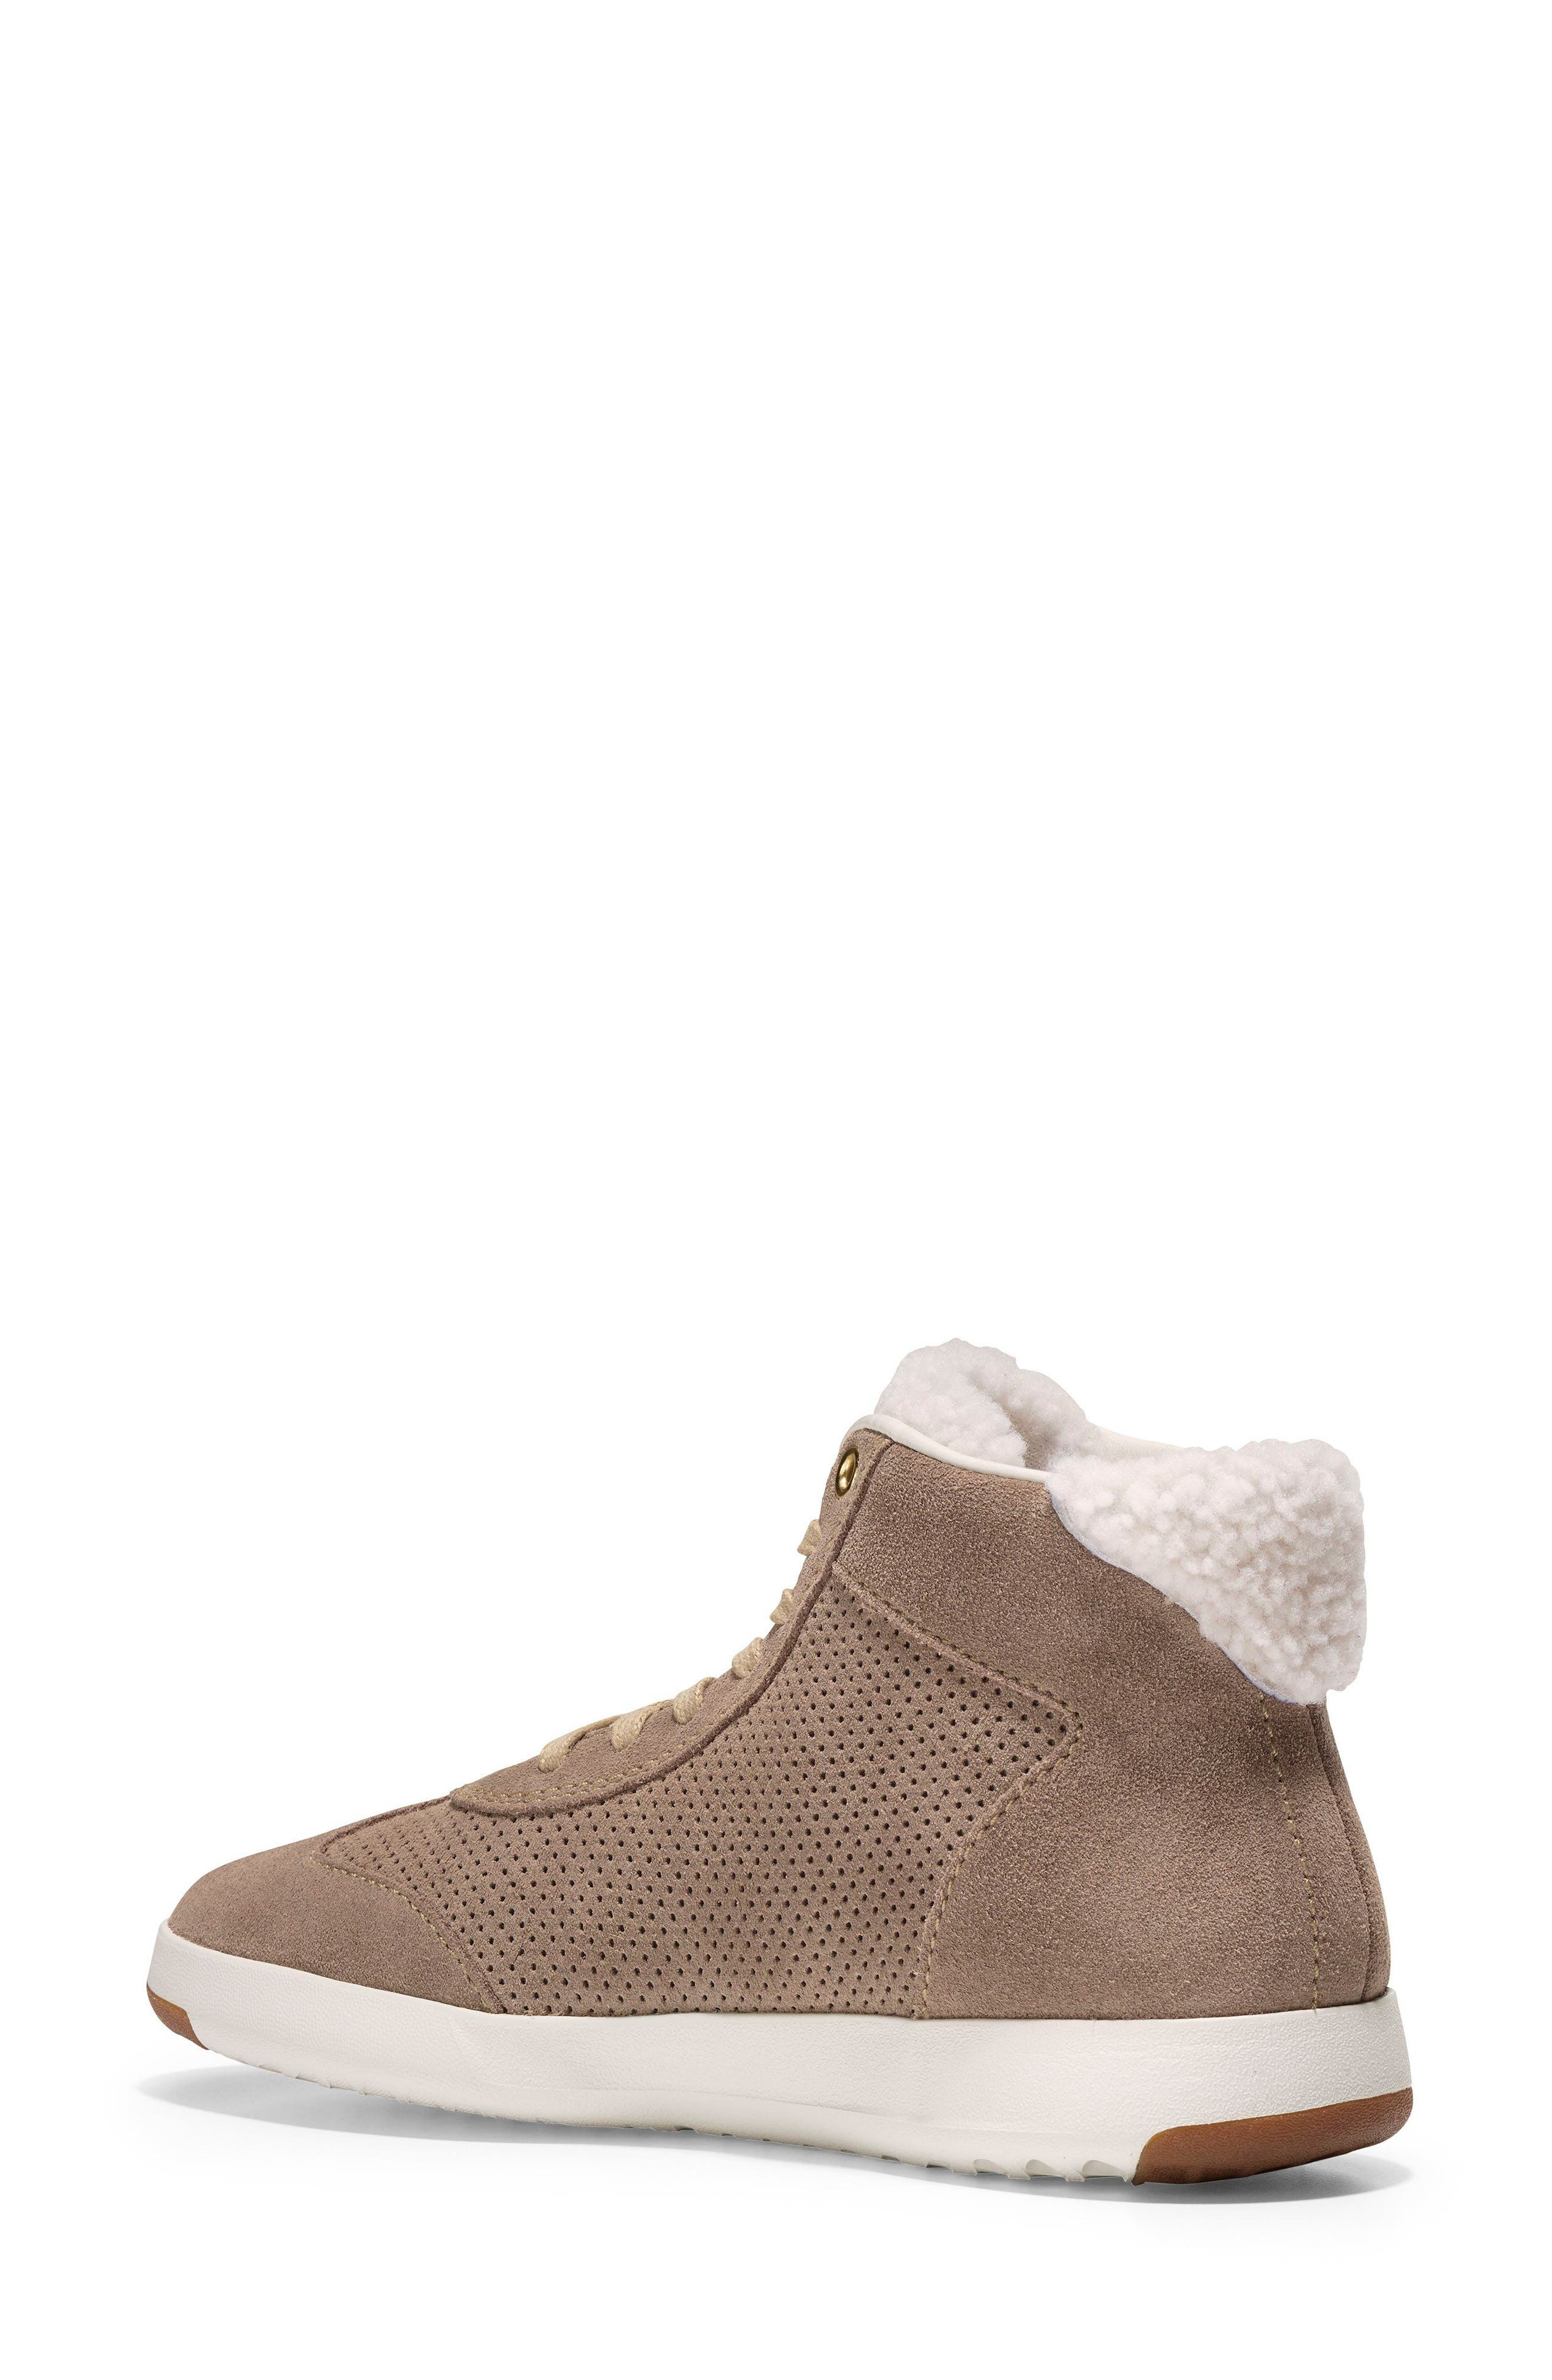 GrandPro High Top Sneaker,                             Alternate thumbnail 2, color,                             Warm Sand Suede